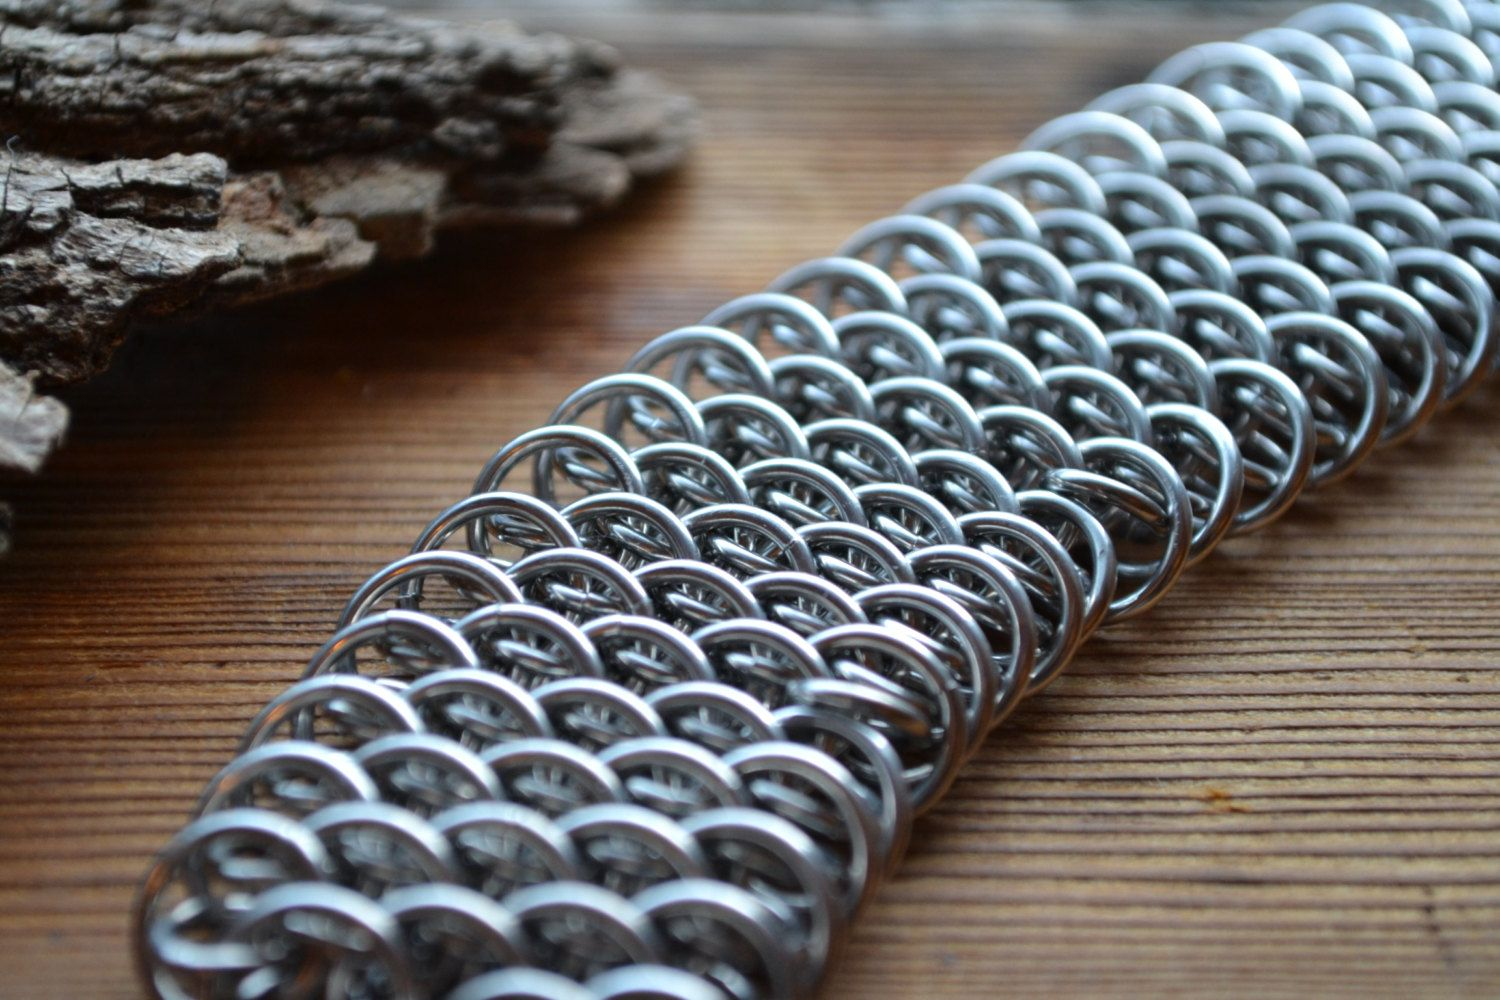 New to AthenasArmoury on Etsy: Dragonscale Chain Maille Bracelet - Fantasy Industrial Renaissance LARP Cosplay (49.00 USD)